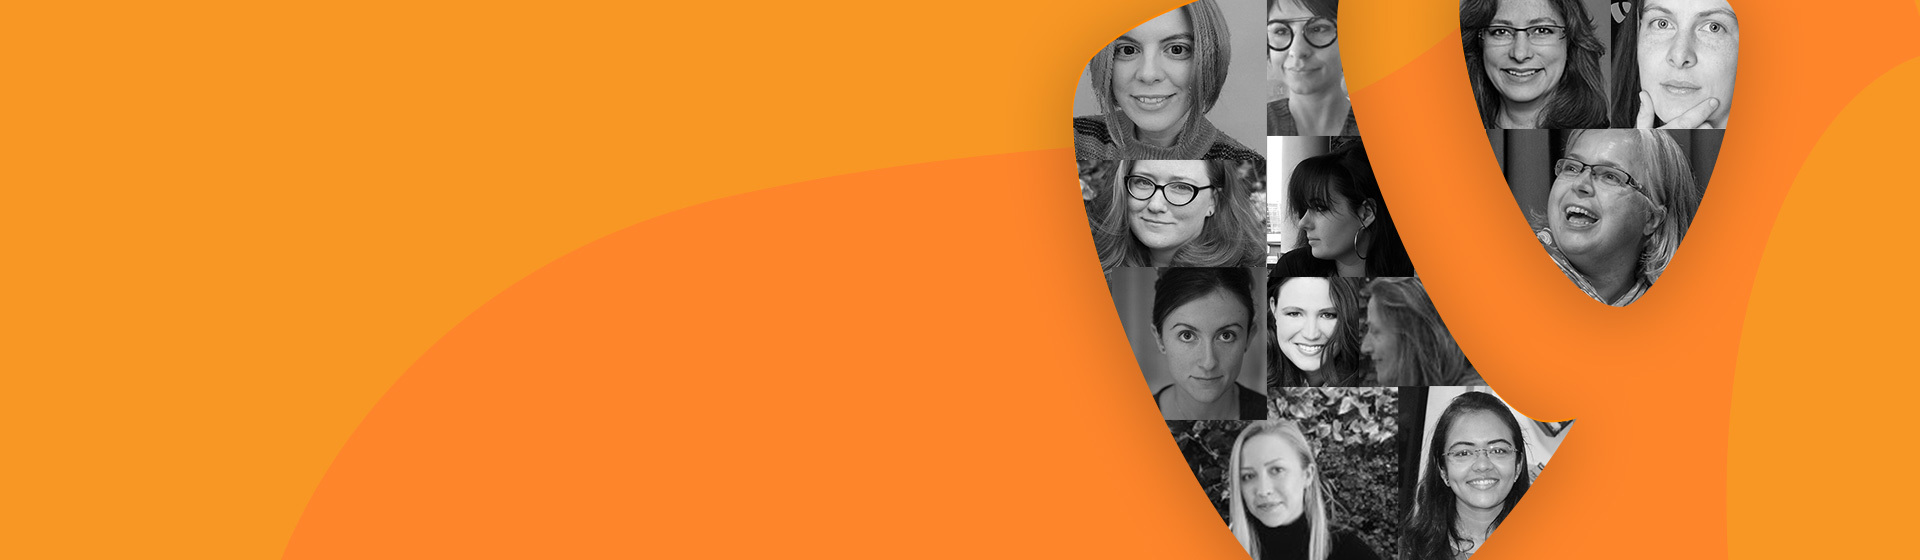 10+ Women of TYPO3 Who Code, Design, and Inspire!